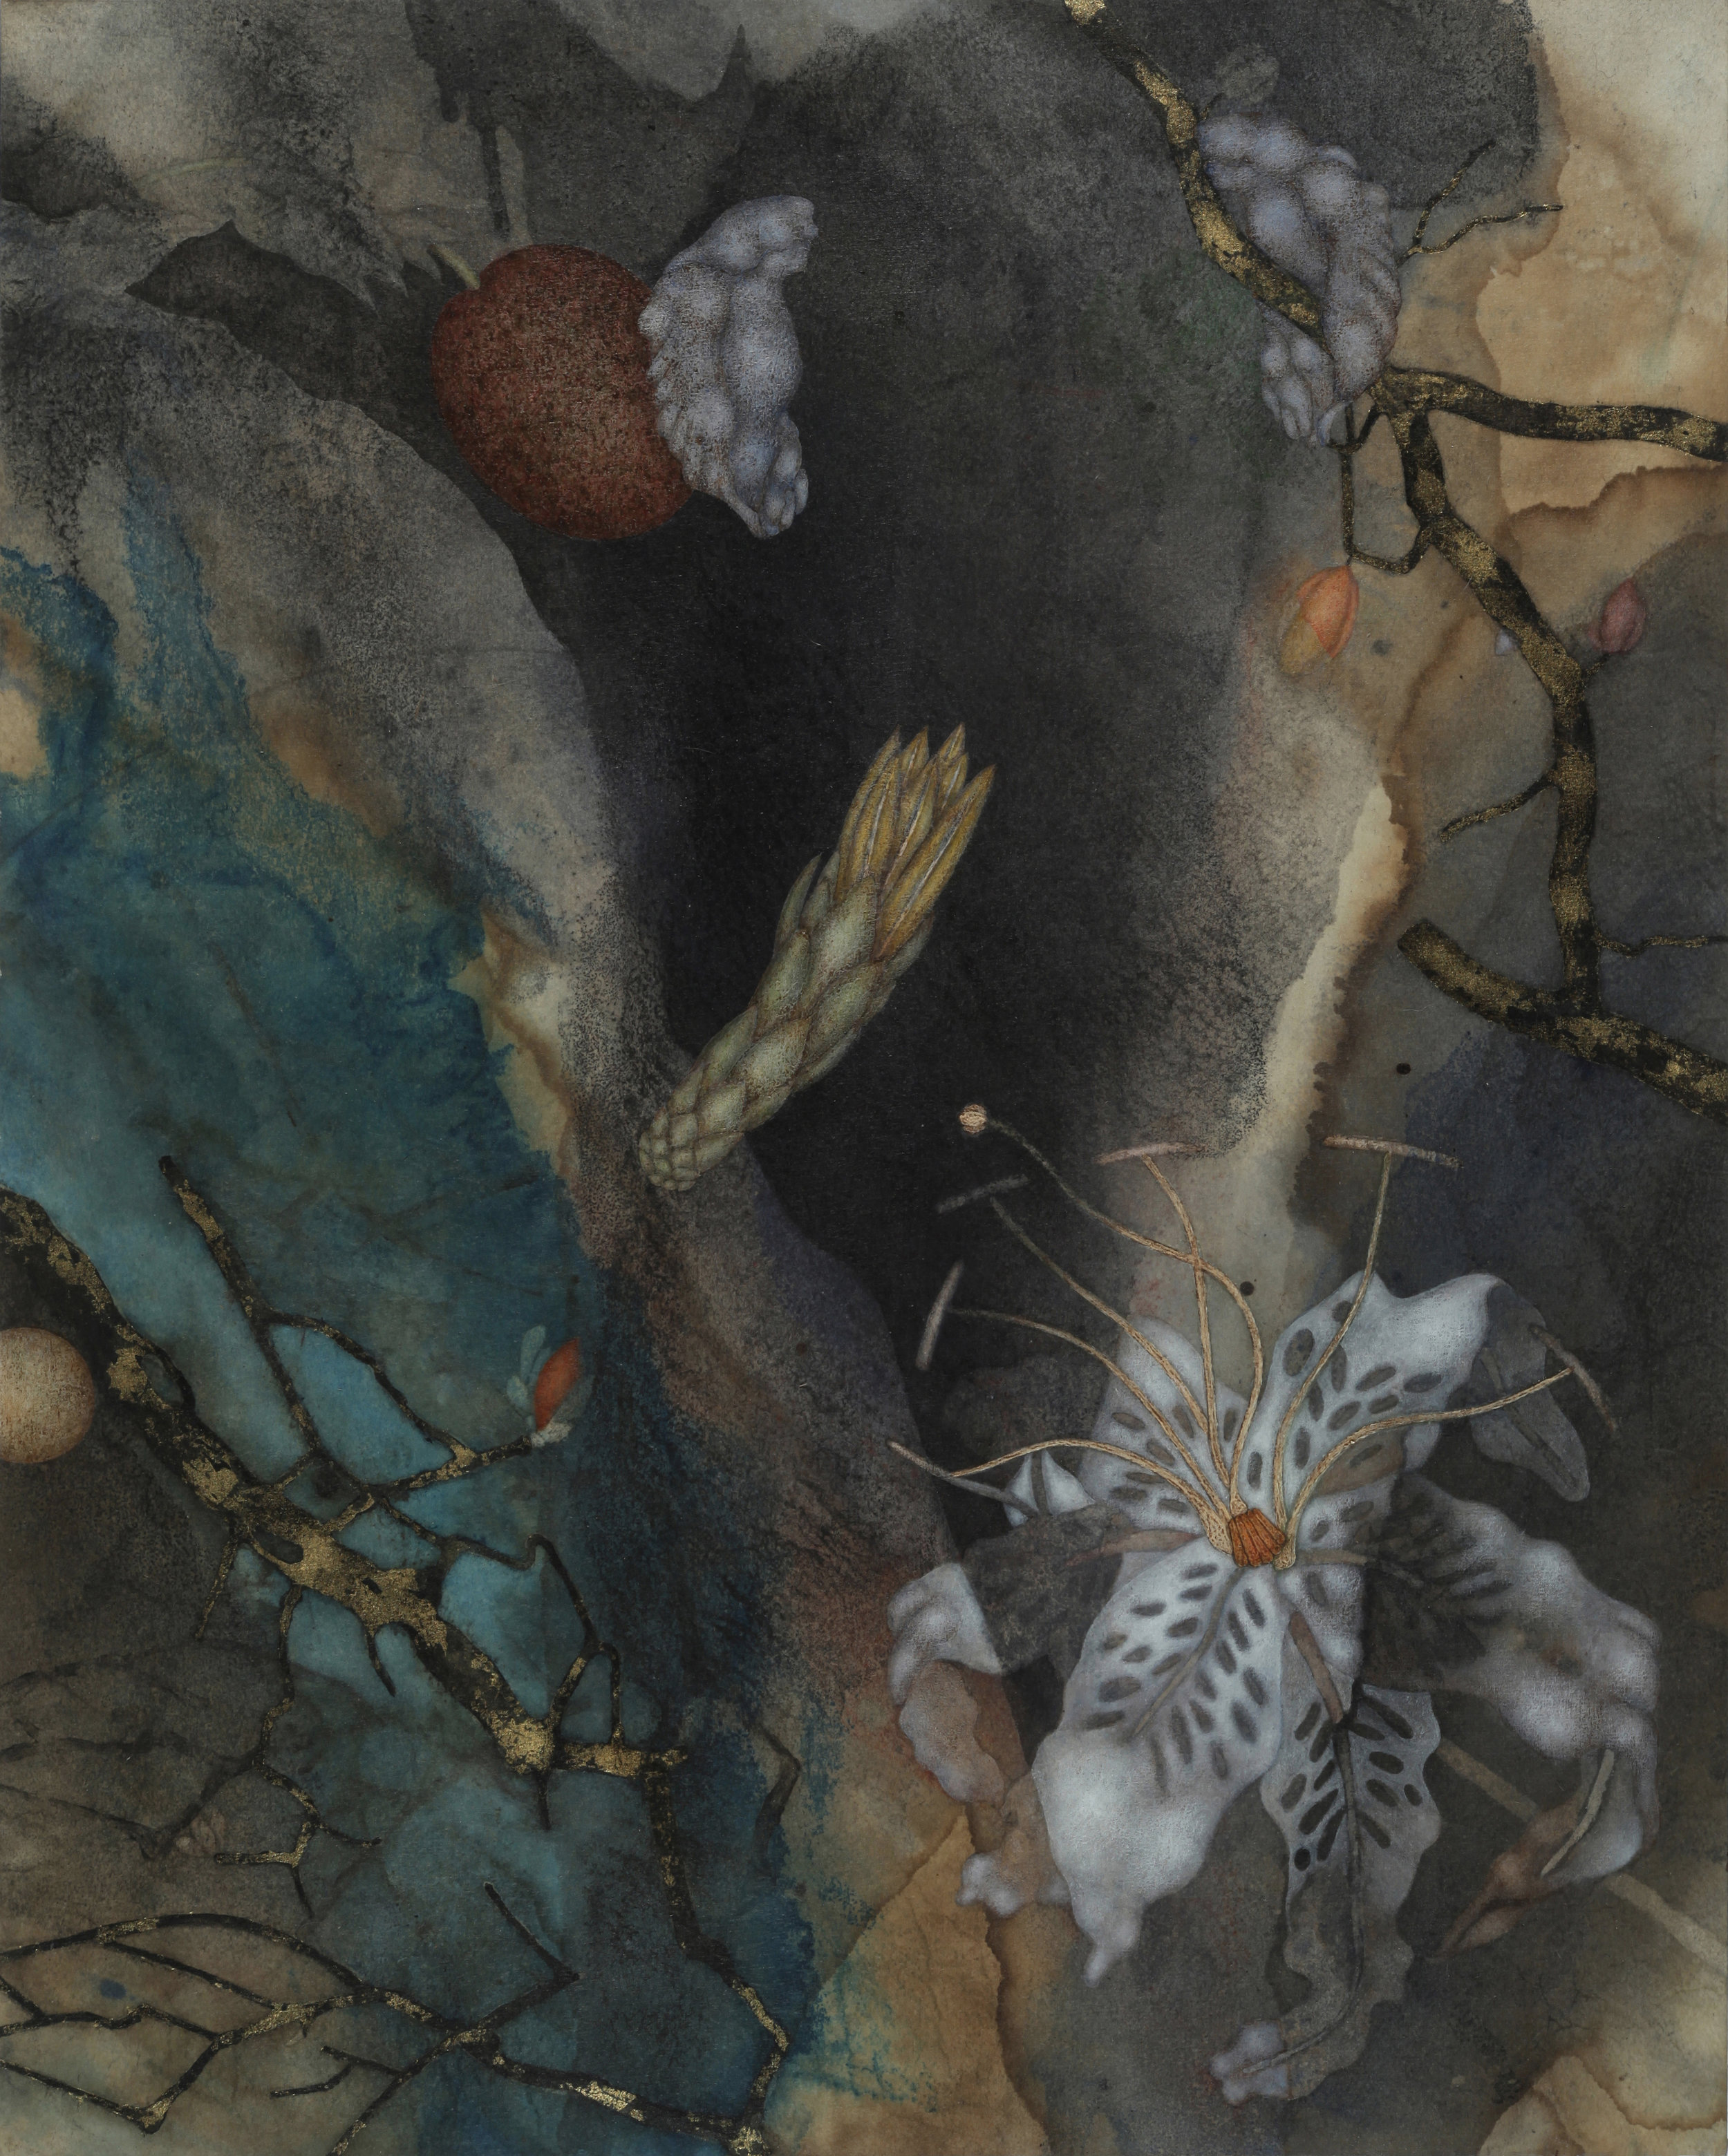 Copy of Tundale's Journey III (2017), 20in x16in,  oil, encaustic, asphaltum, gold leaf, on Okawara paper on panel